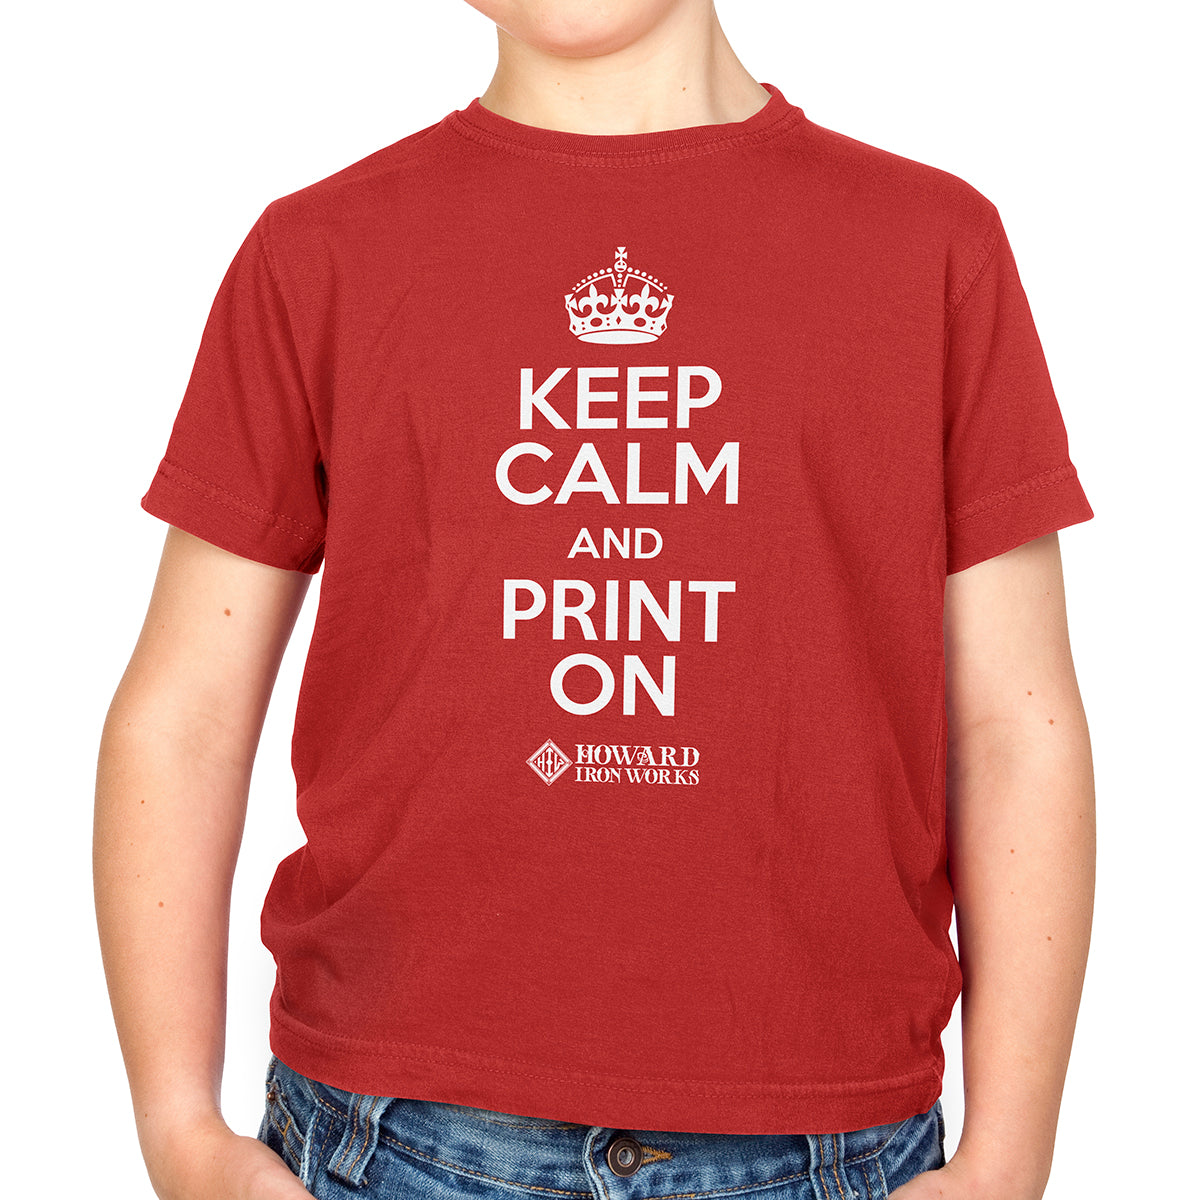 Youth T-shirt, Keep Calm, Red - from Howard Iron Works Printing Museum